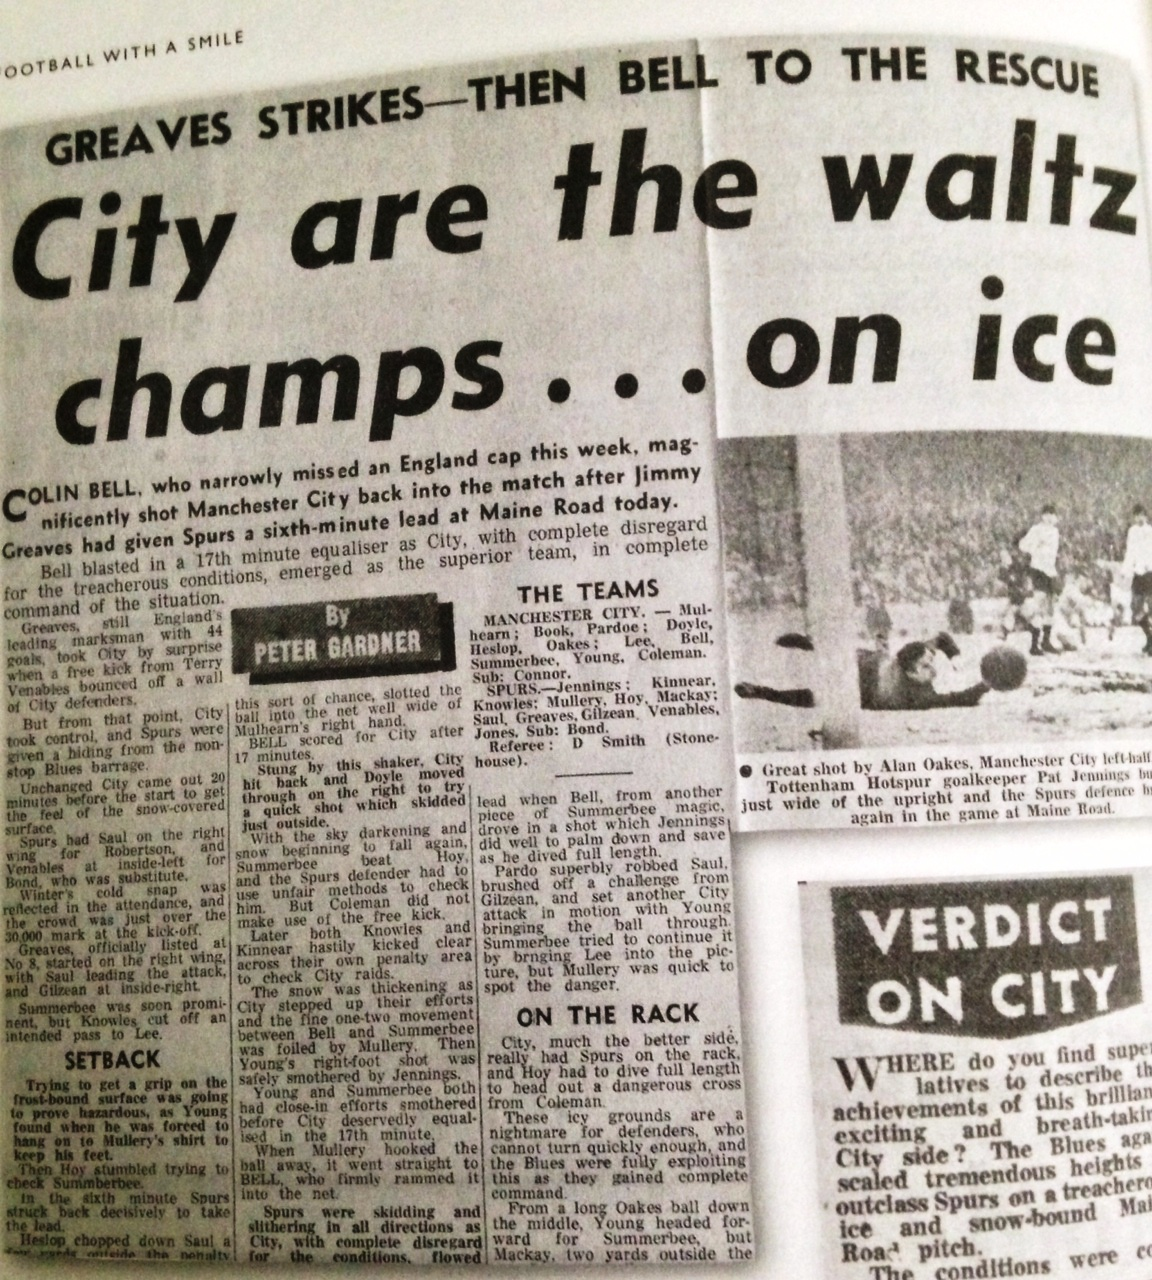 Match Report - City's famous victory over Spurs is reported by the Manchester Evening News' excellent City reporter, Peter Gardner.